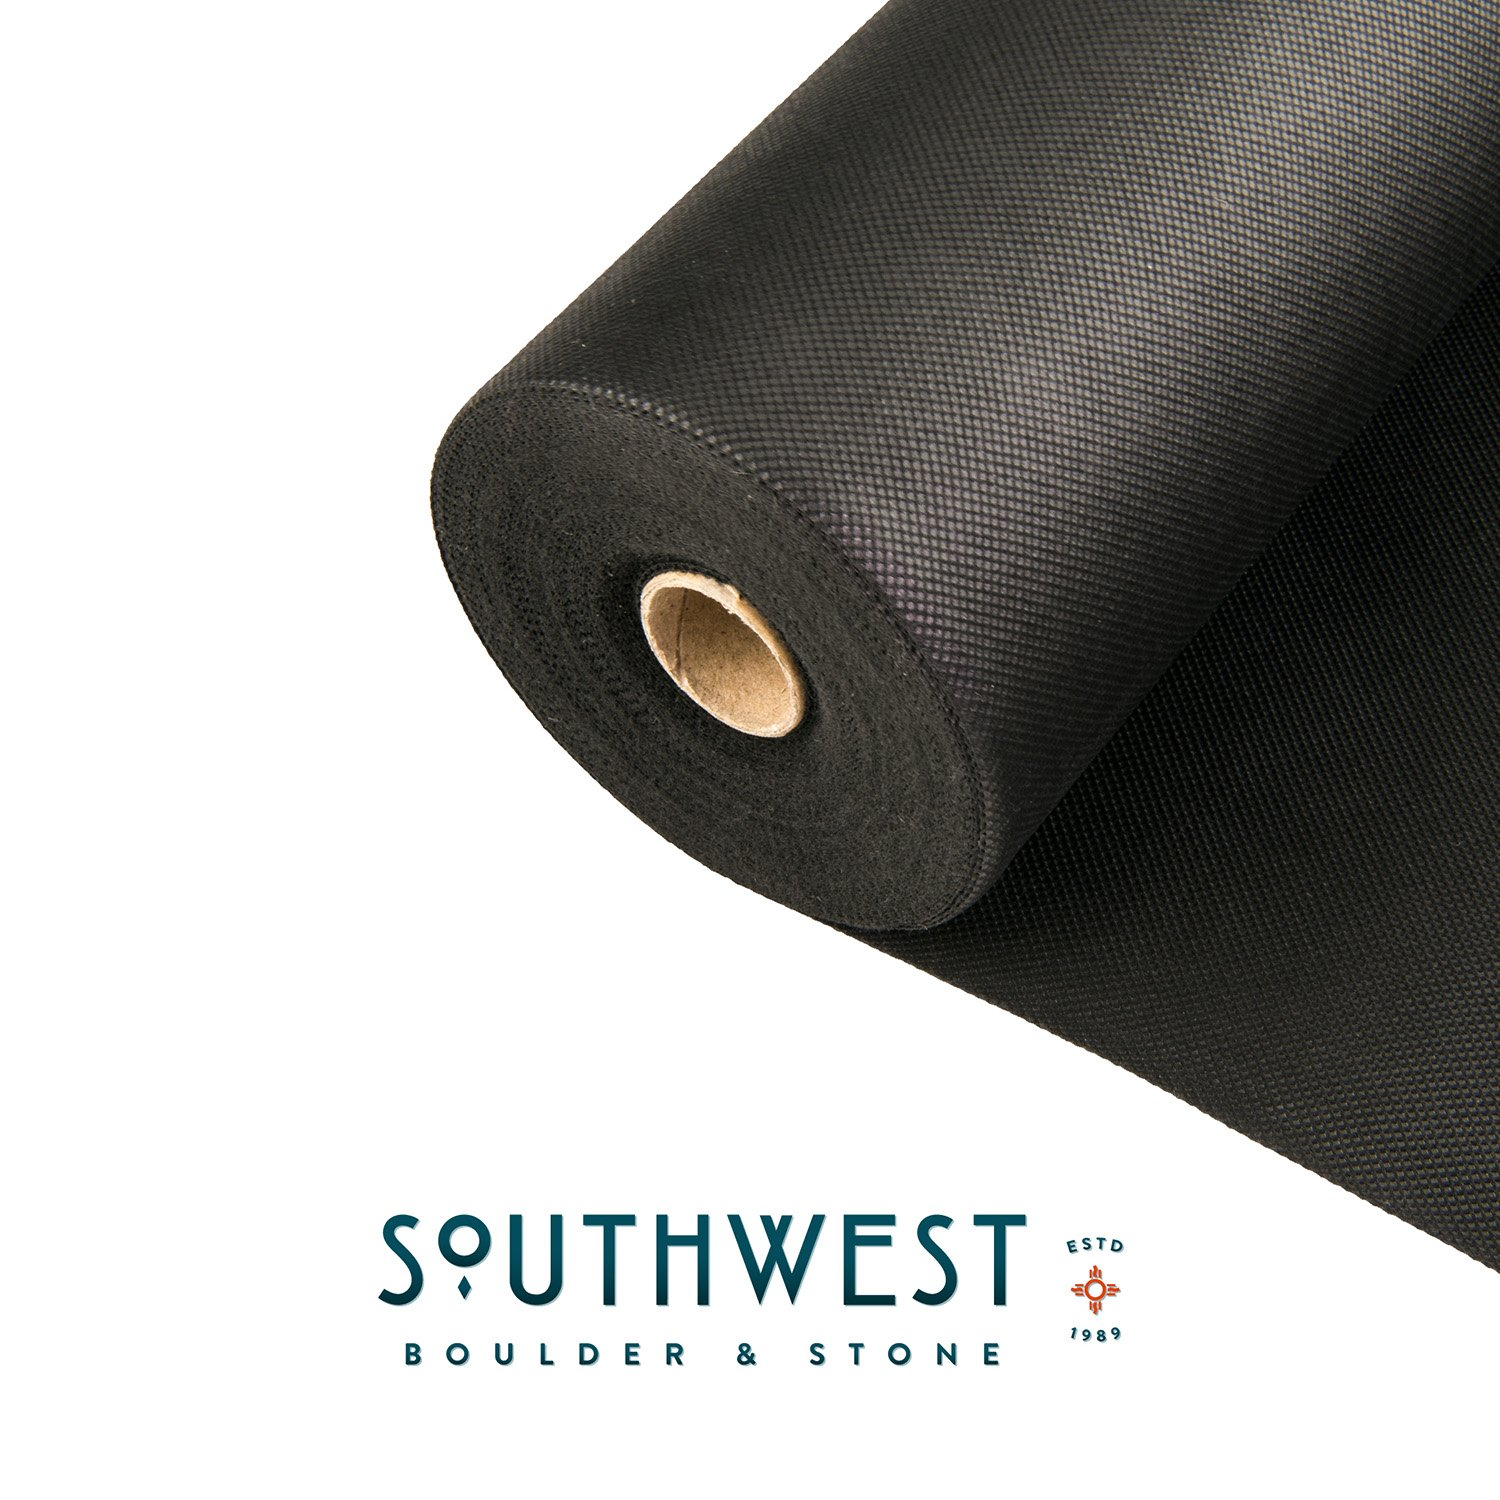 Southwest Boulder & Stone Weed Barrier | Landscape Fabric for Outdoor Gardens | Black Commercial Grade Weed Block Cloth | Heavy-Duty Landscaping Material 3' x 50', 20-Year Guarantee